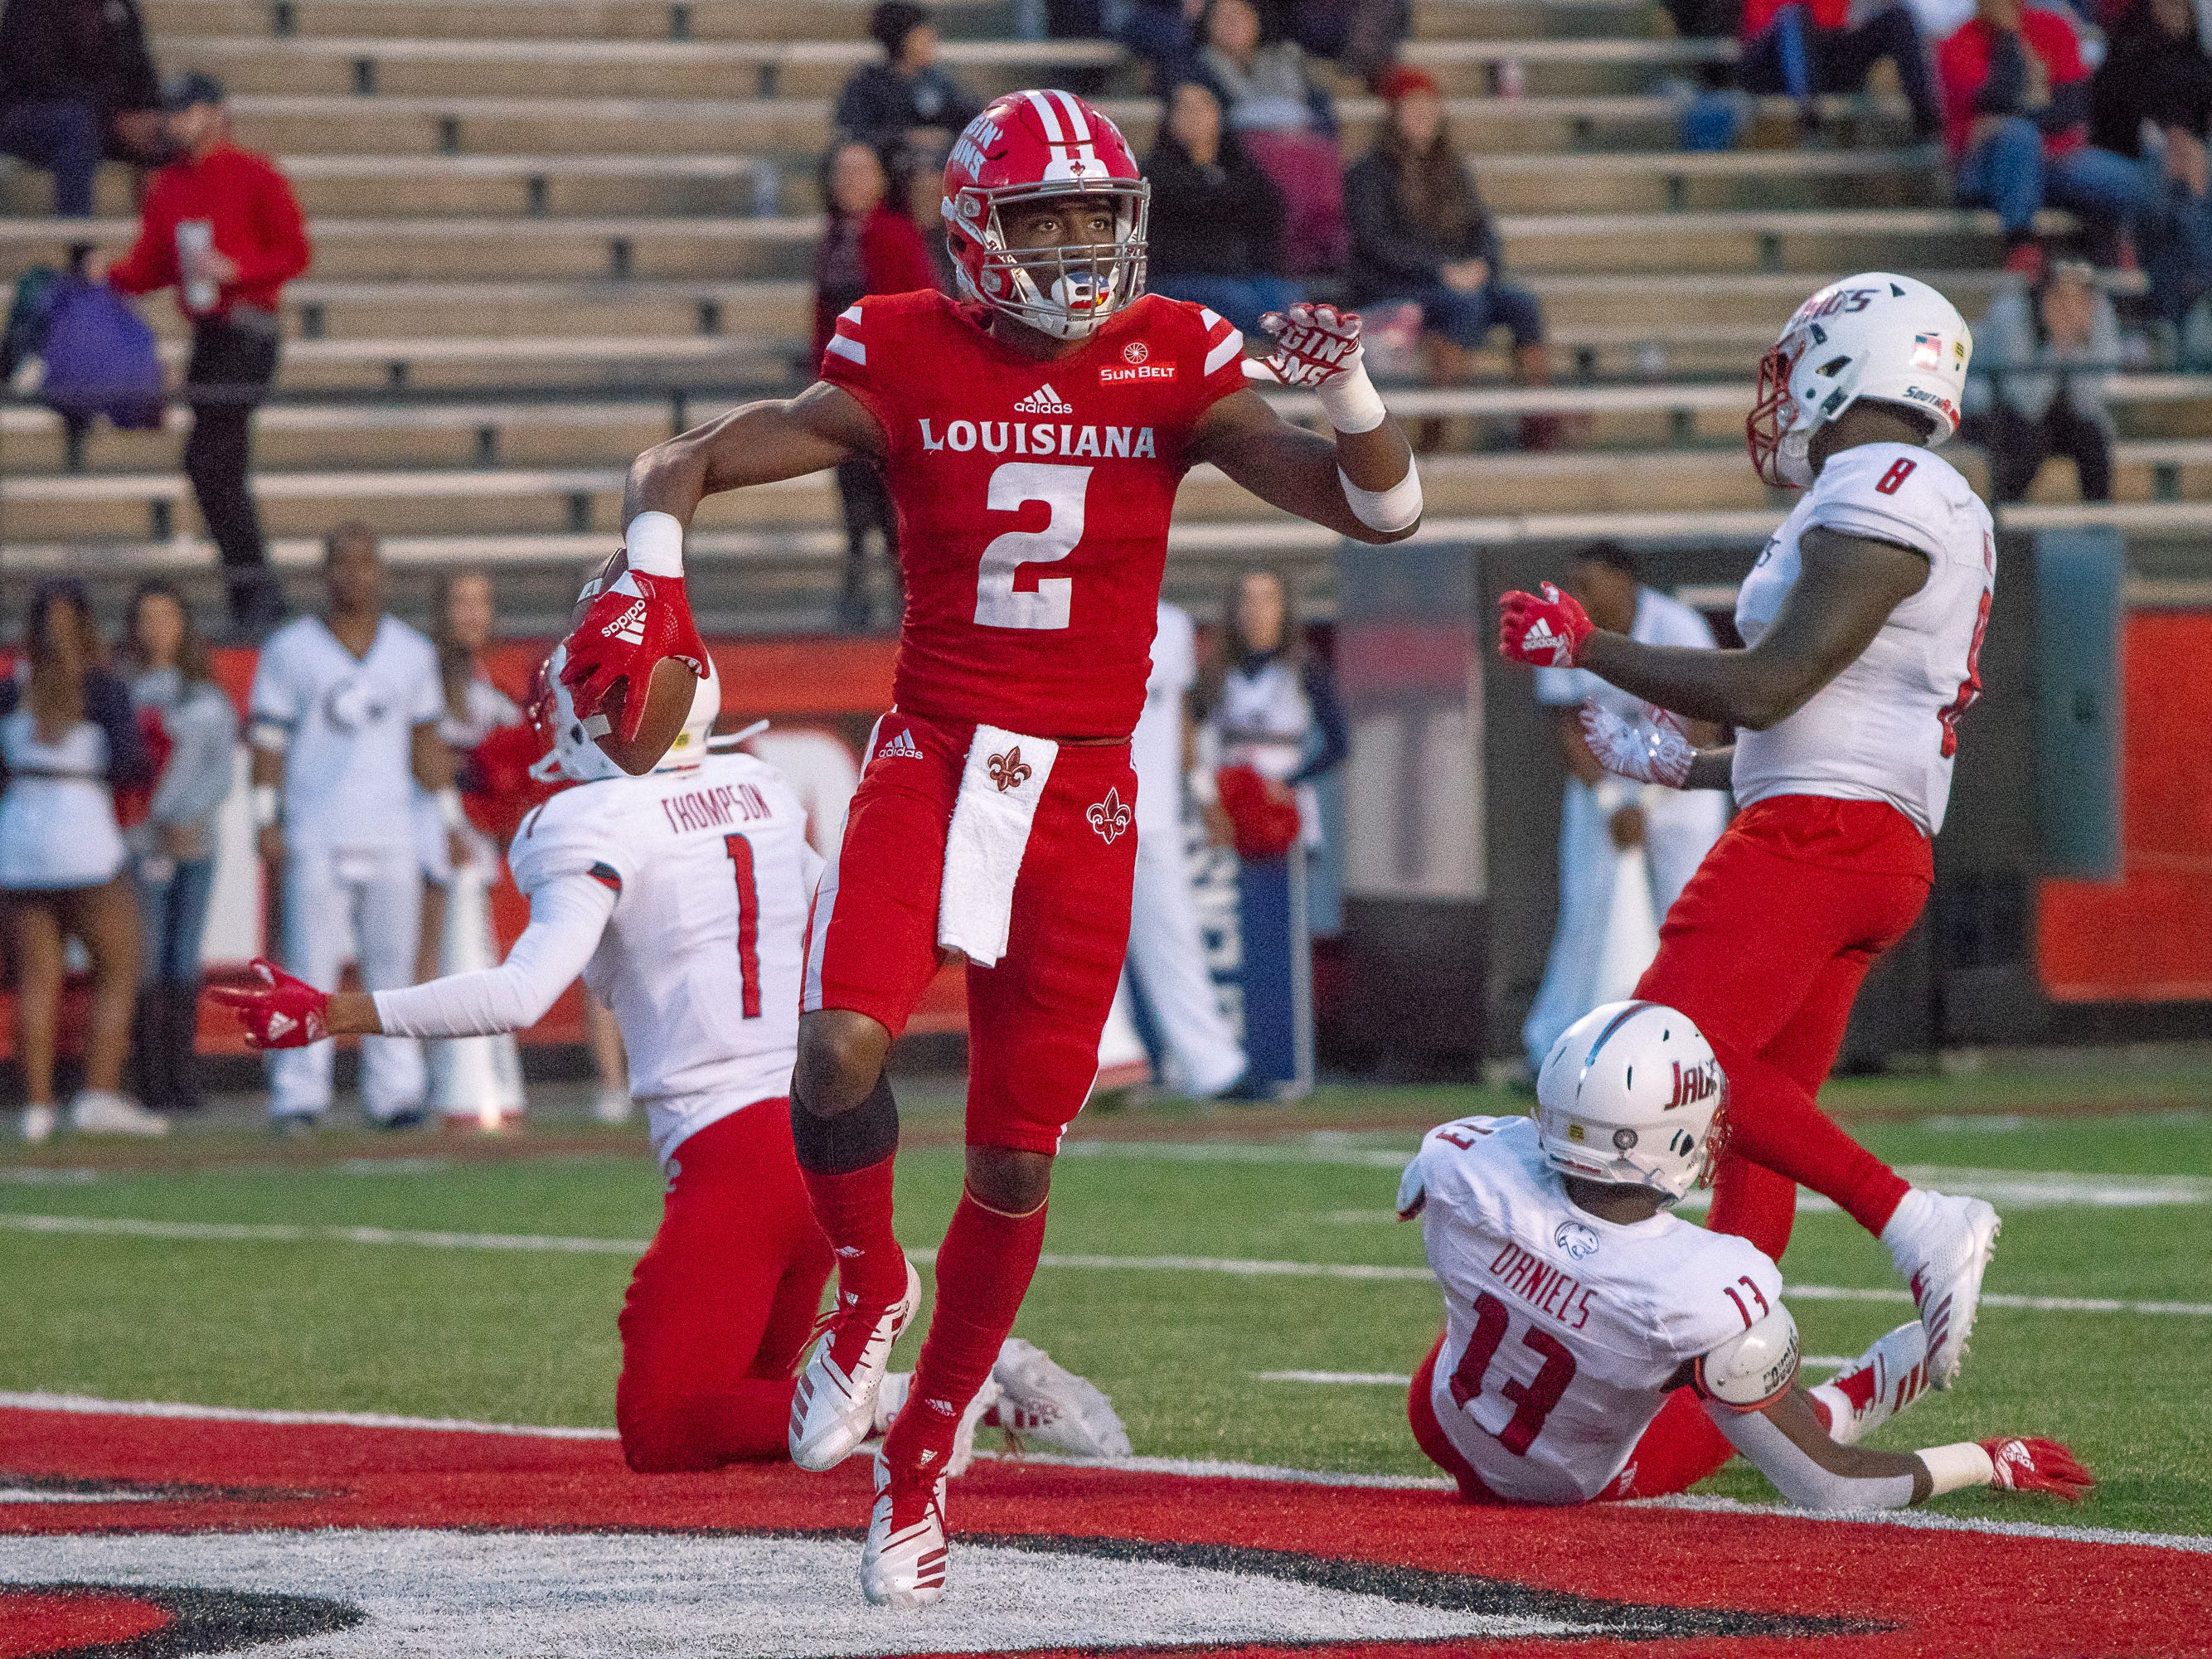 UL weaponizes Bradley, Mitchell in win over South Alabama